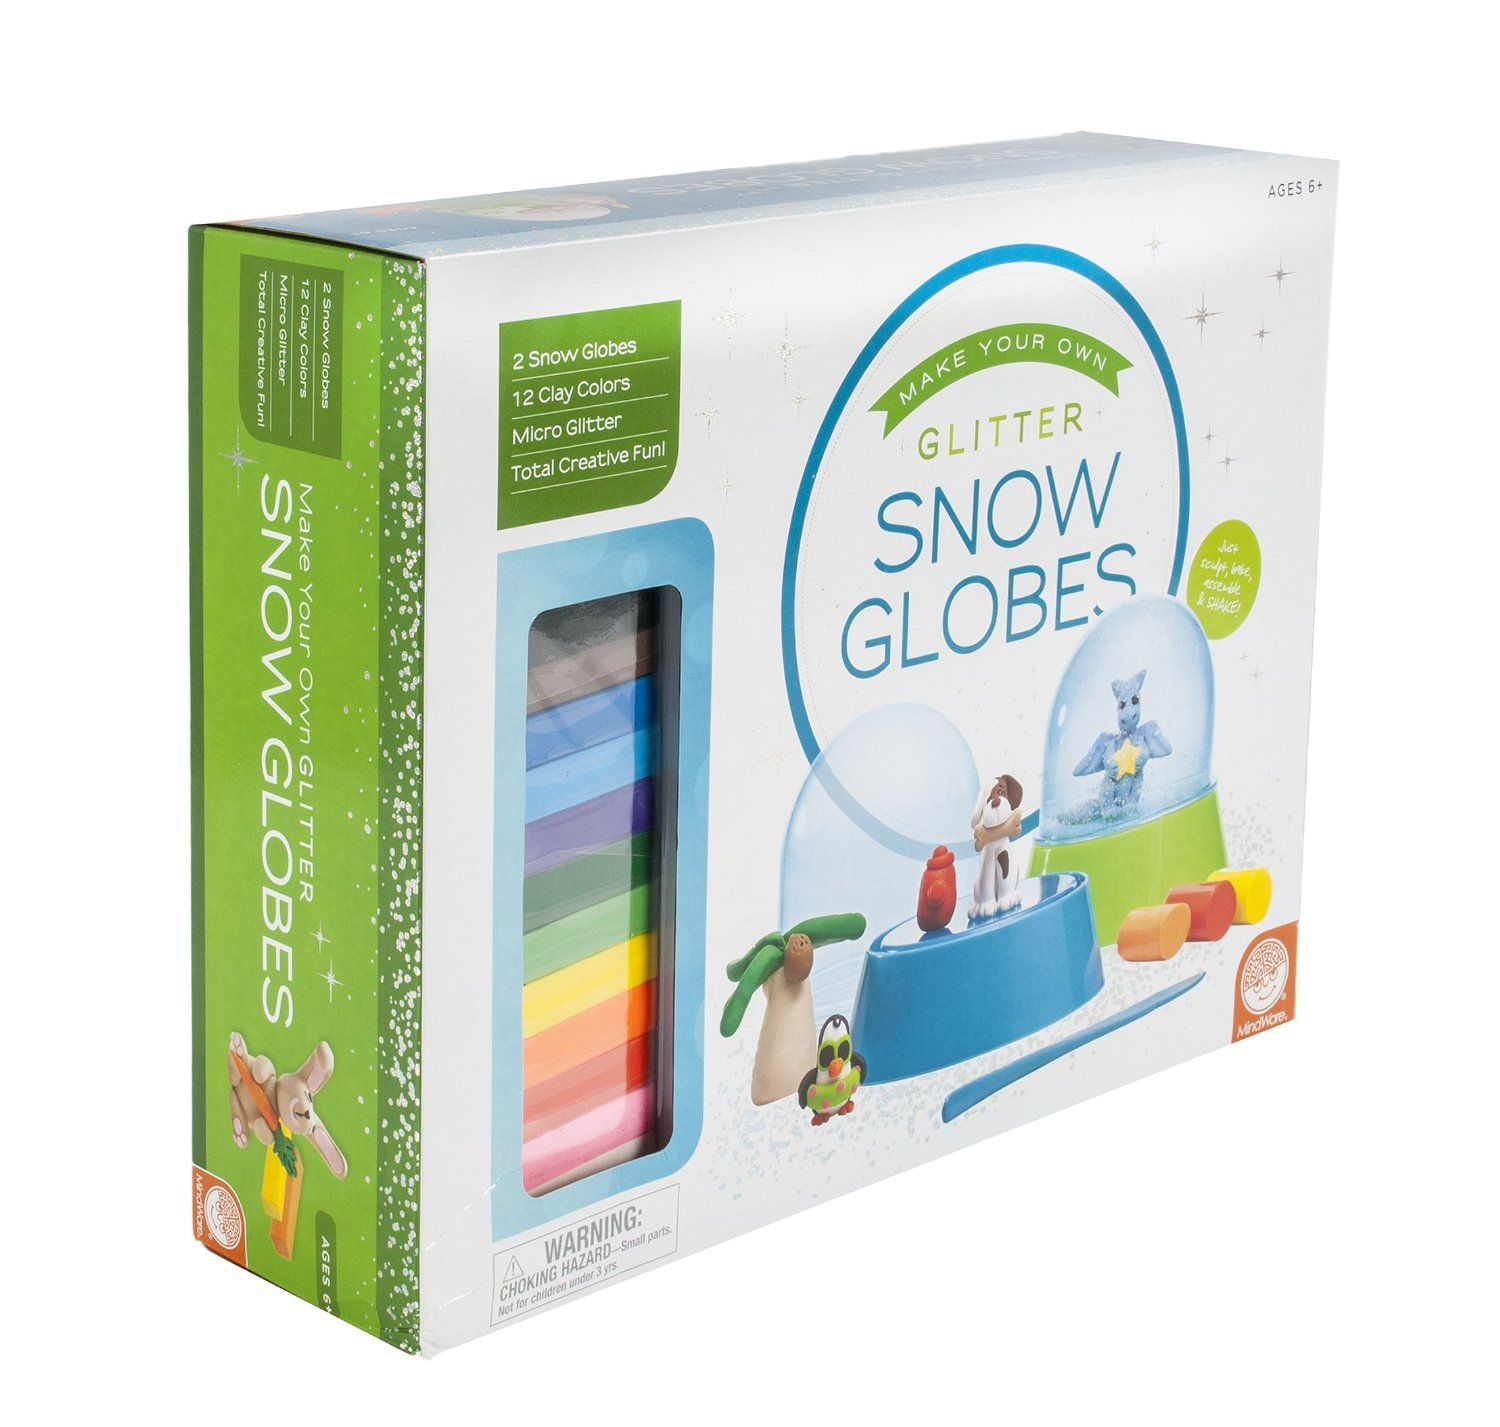 Gifts for 7 Year Old Girls Snow globe kit, Snow globes